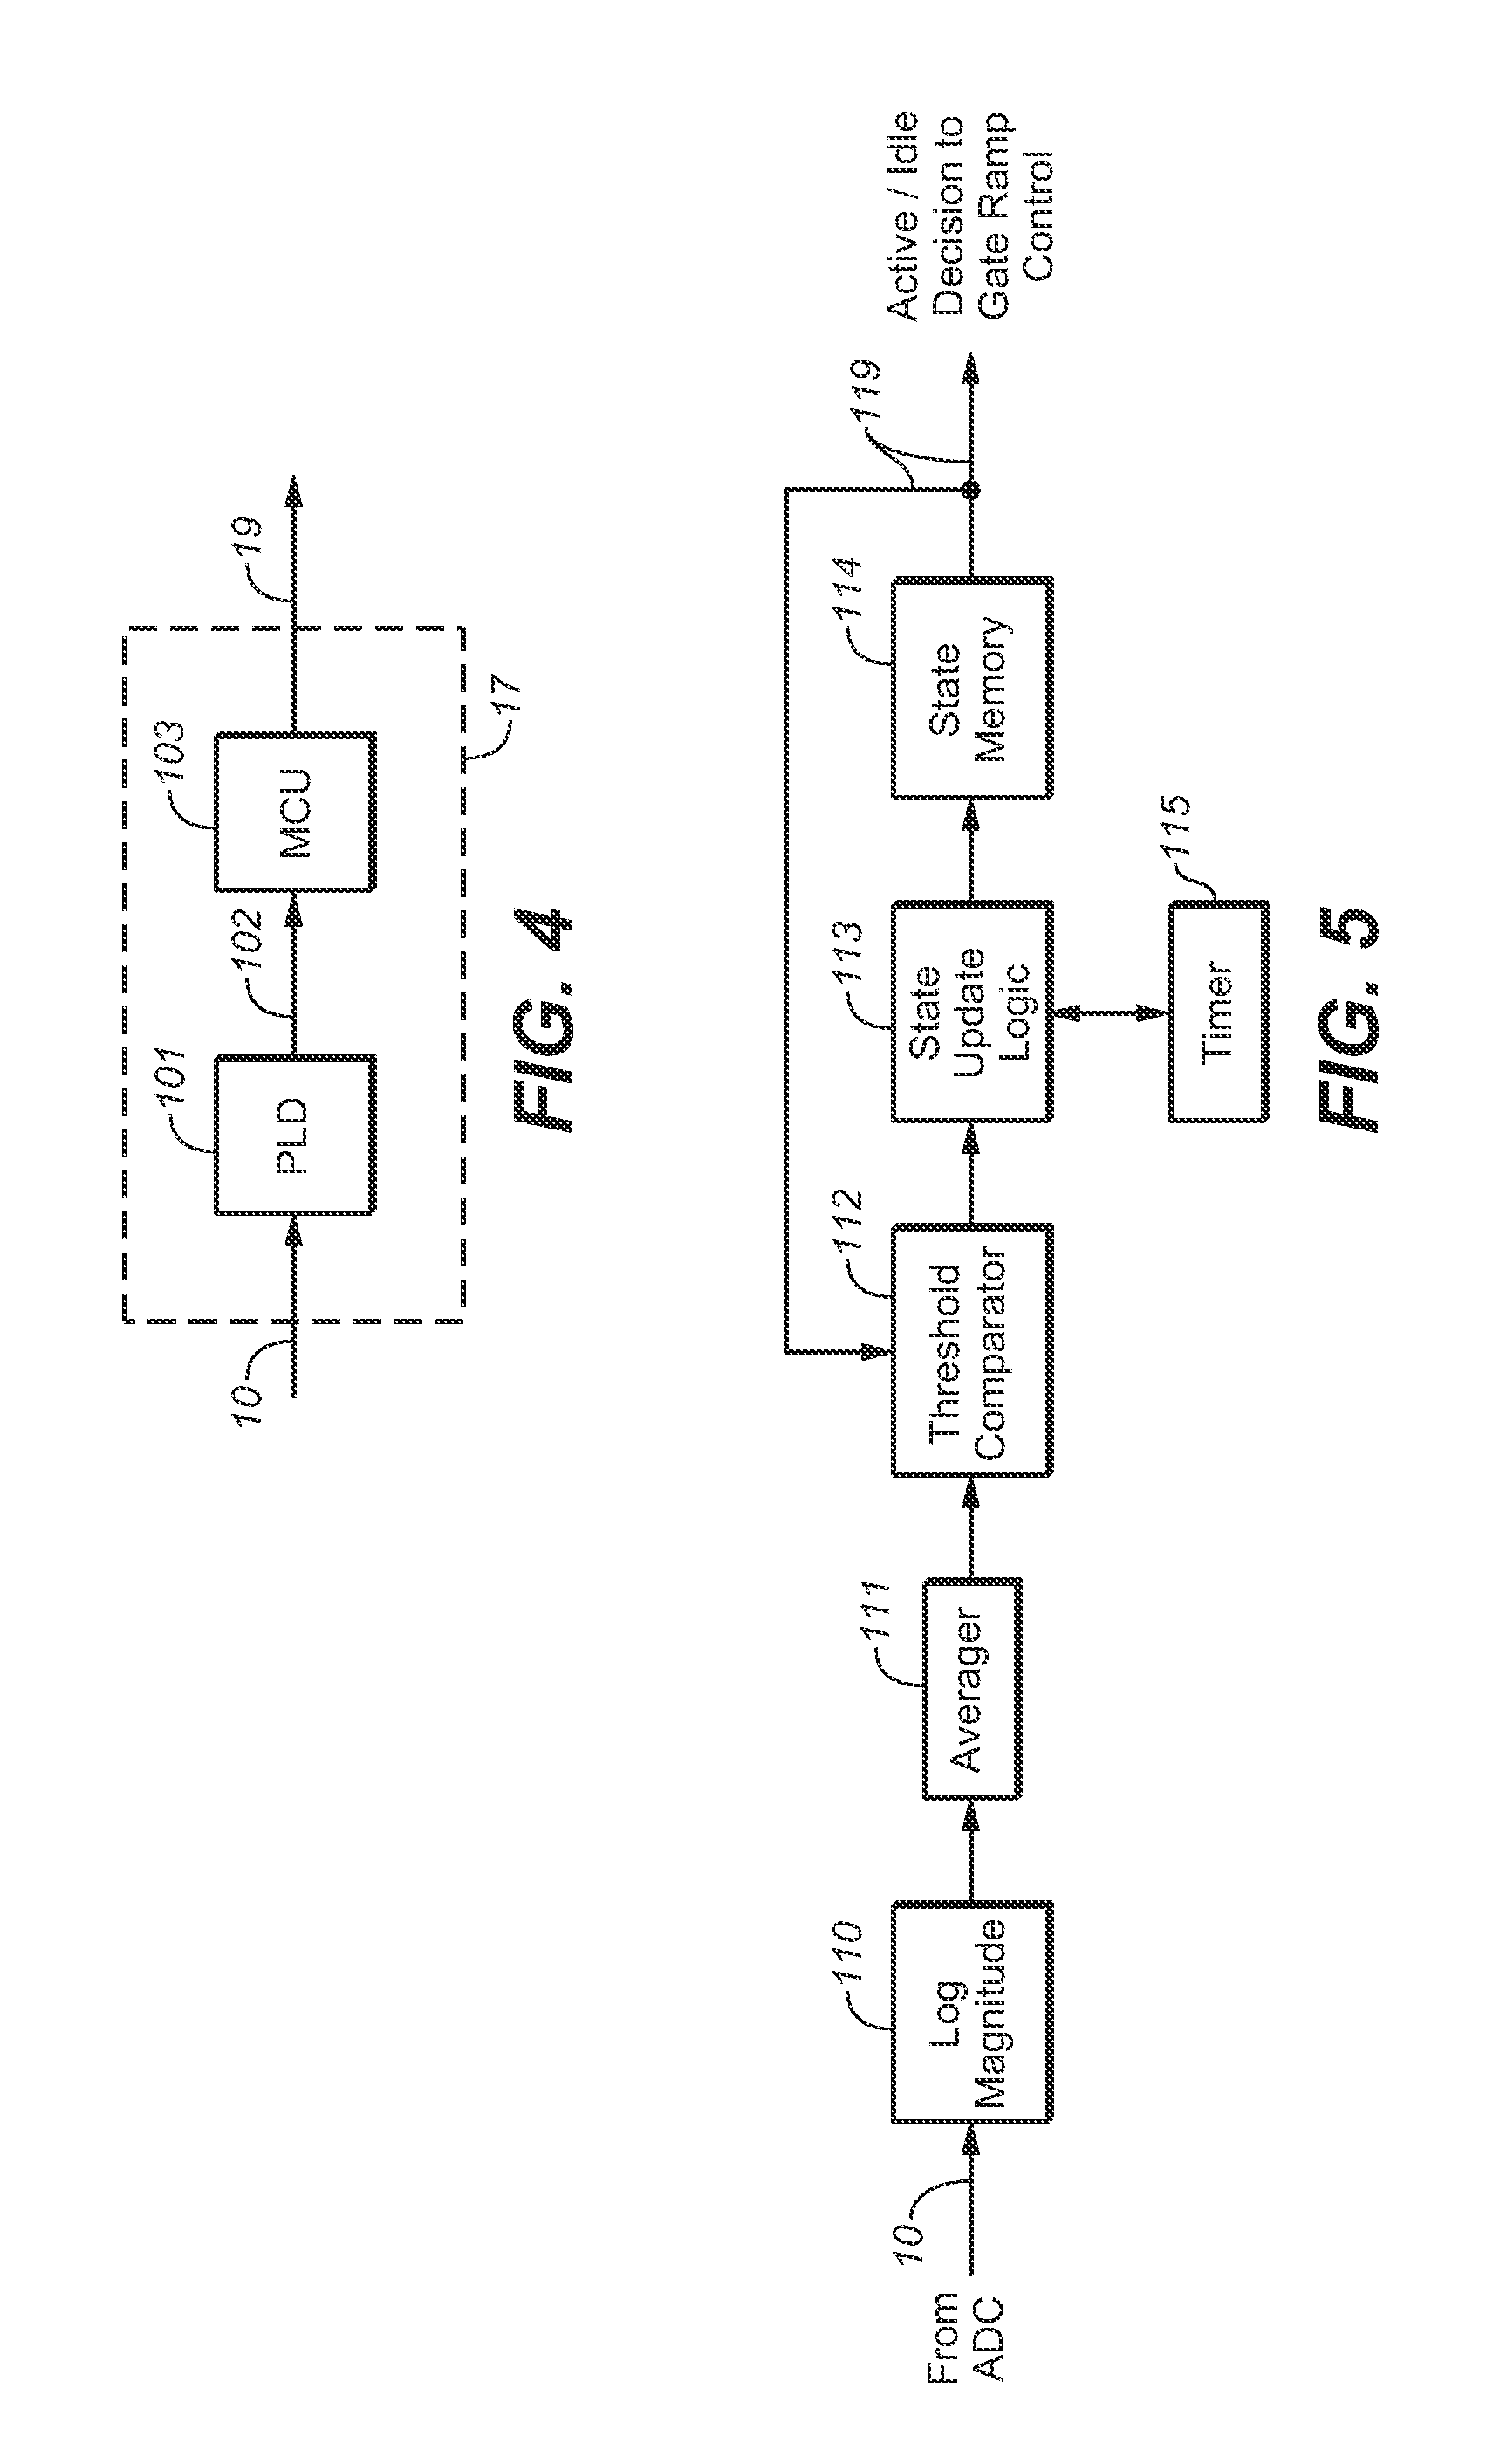 Patent Us20110254625 Circuit And Method For Reducing Noise In Audio Signal Detector Switch Basiccircuit Diagram Drawing